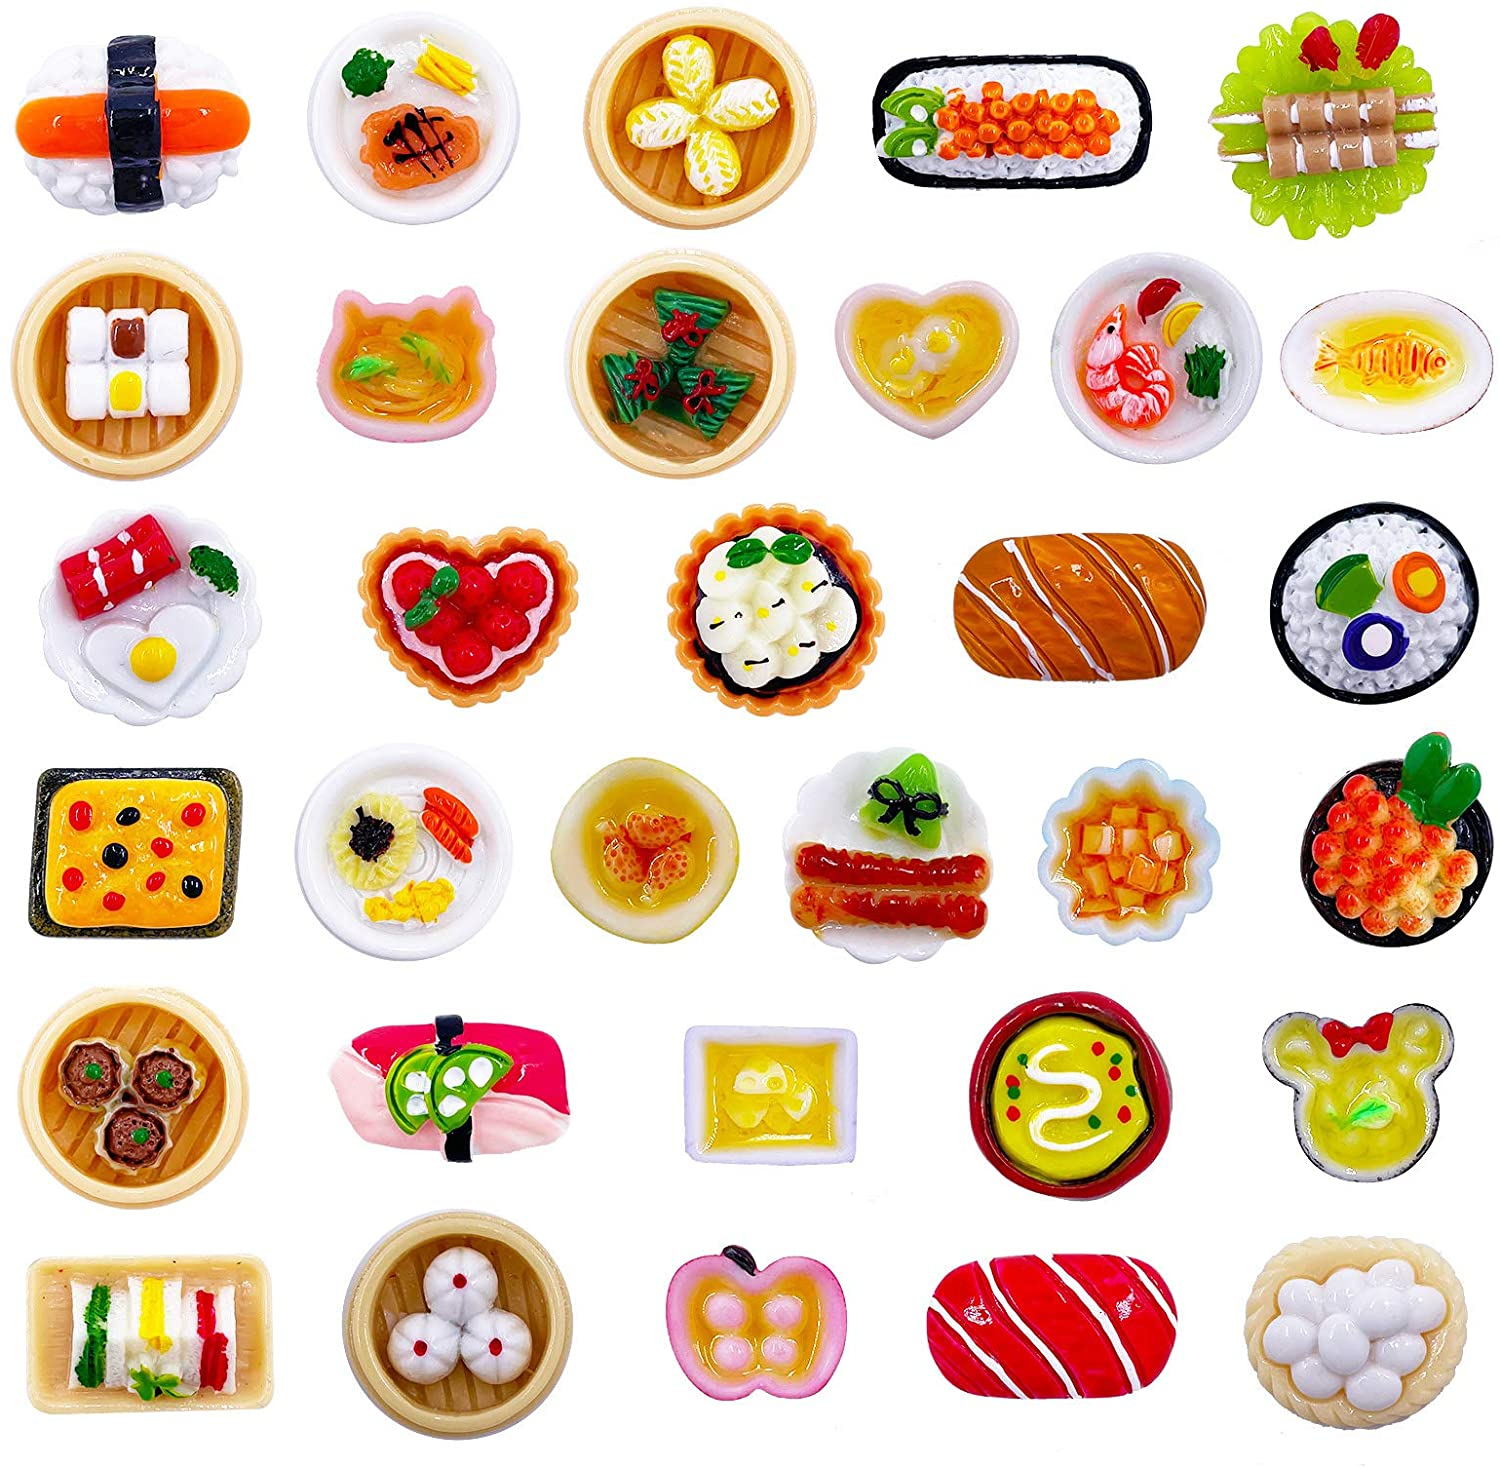 32pcs 1:12 Play Food Mini Toy Chinese Sweet Soup Syrup Noodle Bowls Dollhouse Accessories Miniature Sushi Figurines Decoration Lovely Breakfast Sausage Bun Dumplings Shaomai Micro Landscape (32Food)